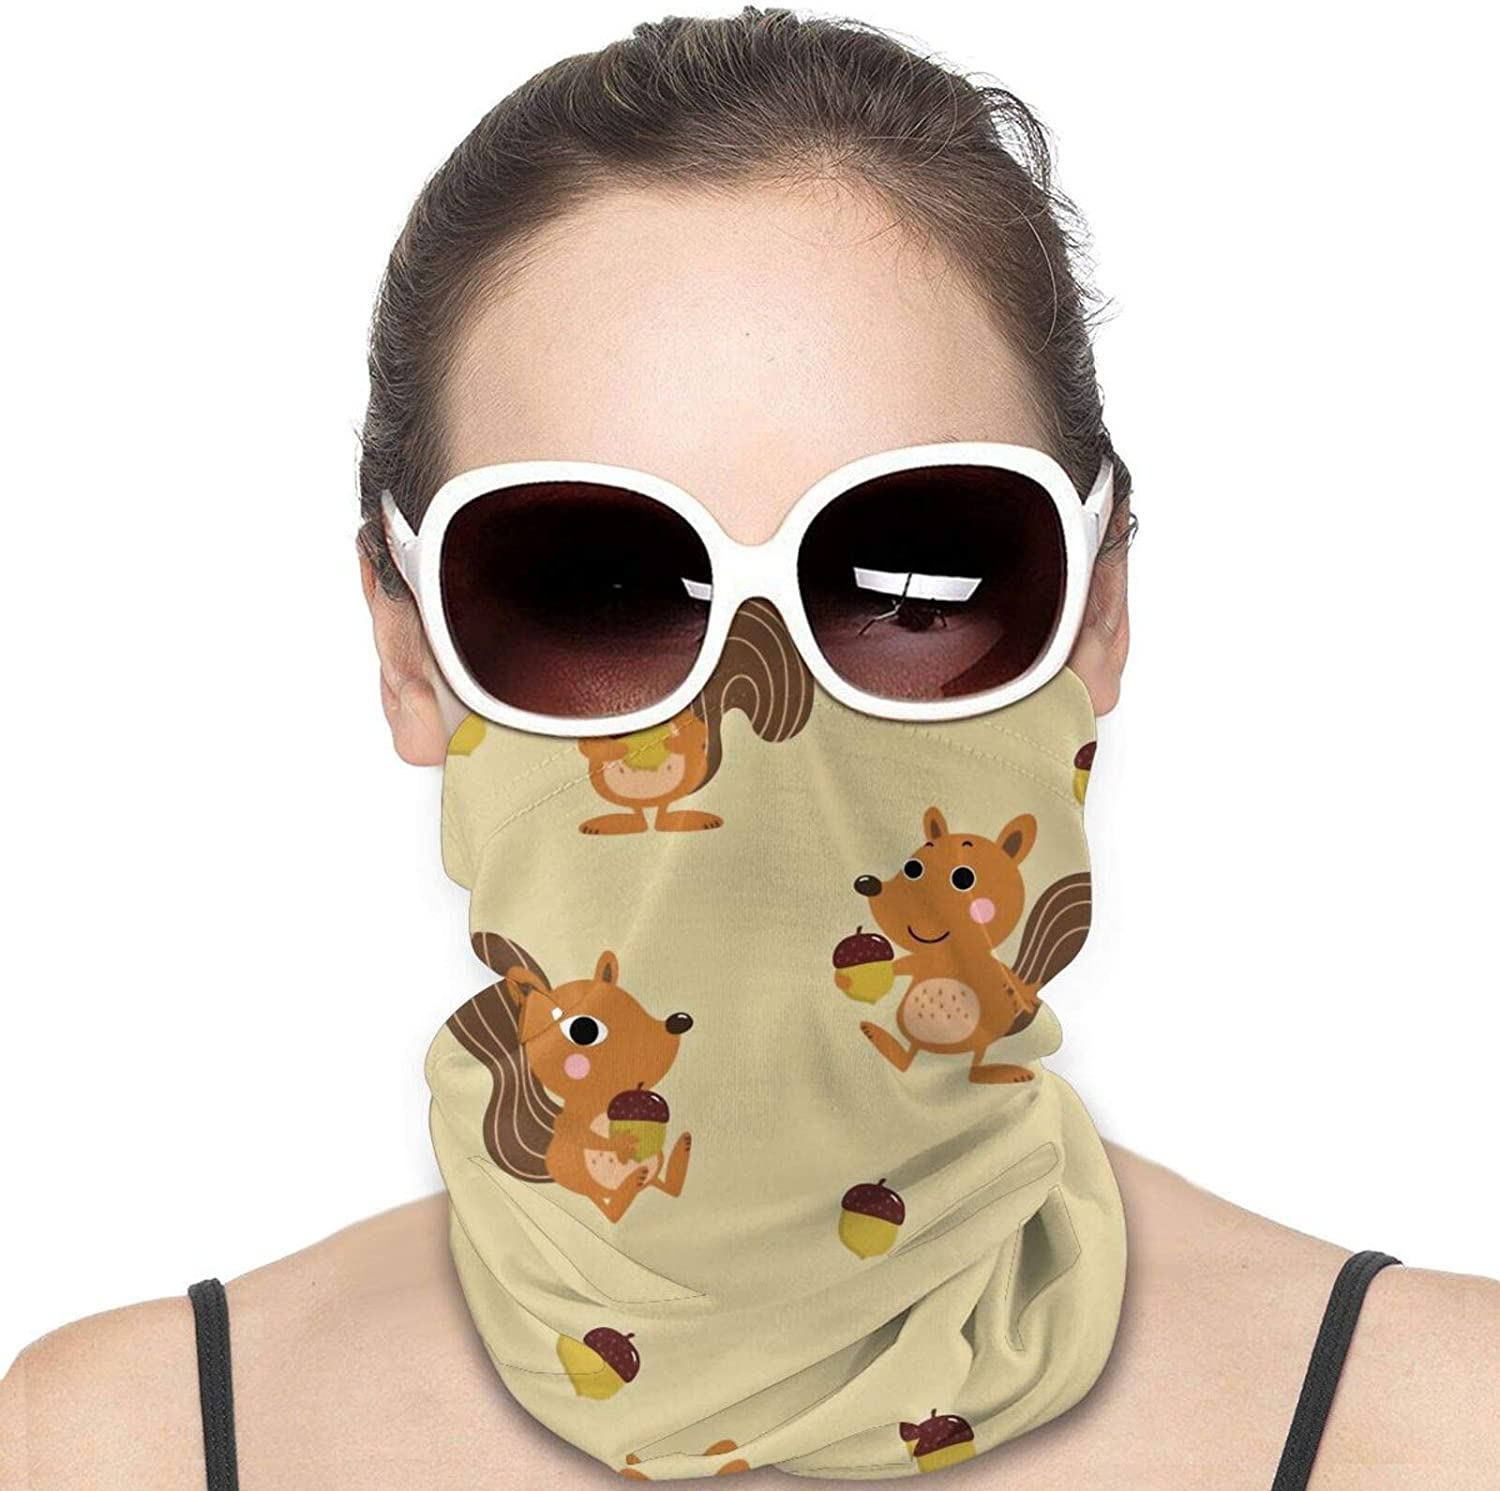 Squirrel with Nuts Neck Gaiter Windproof Face Cover Balaclava Outdoors Magic Scarf Headband for Men Women Motorcycling Fishing Running Climbing